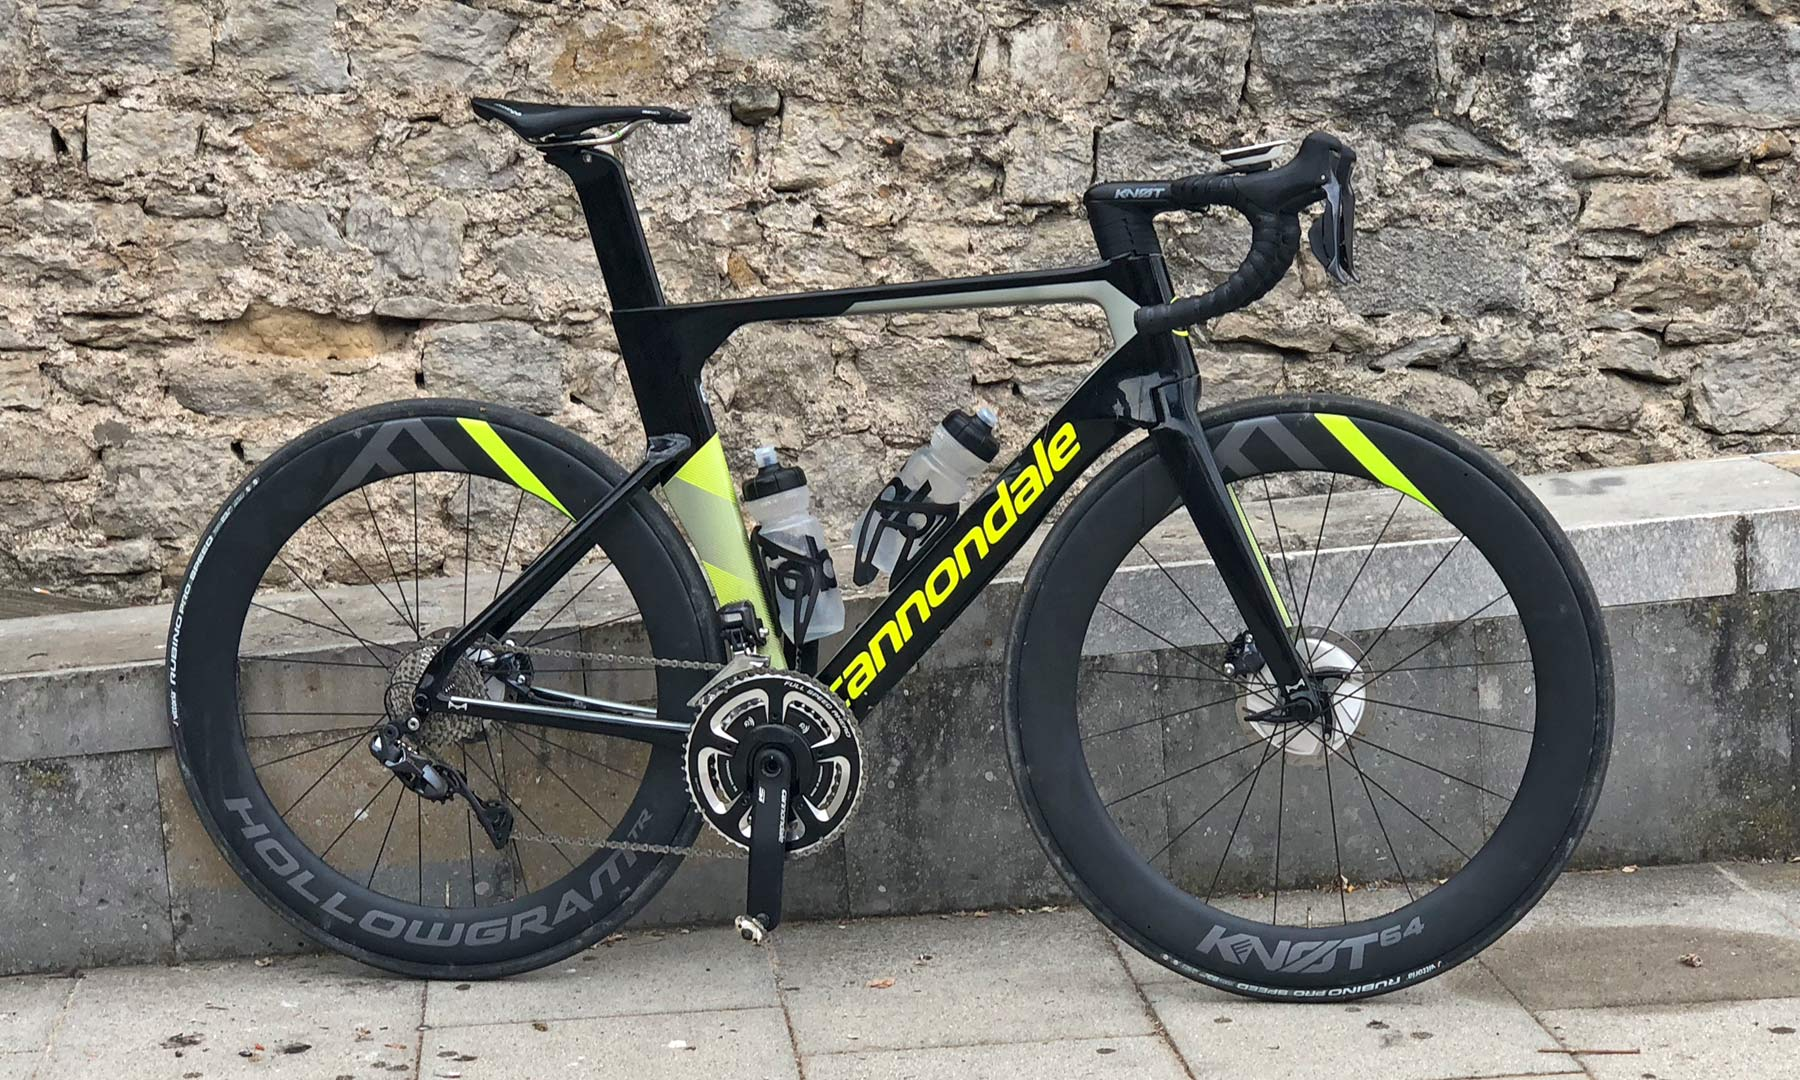 9138b0d99 2019 Cannondale SystemSix carbon disc brake aero road